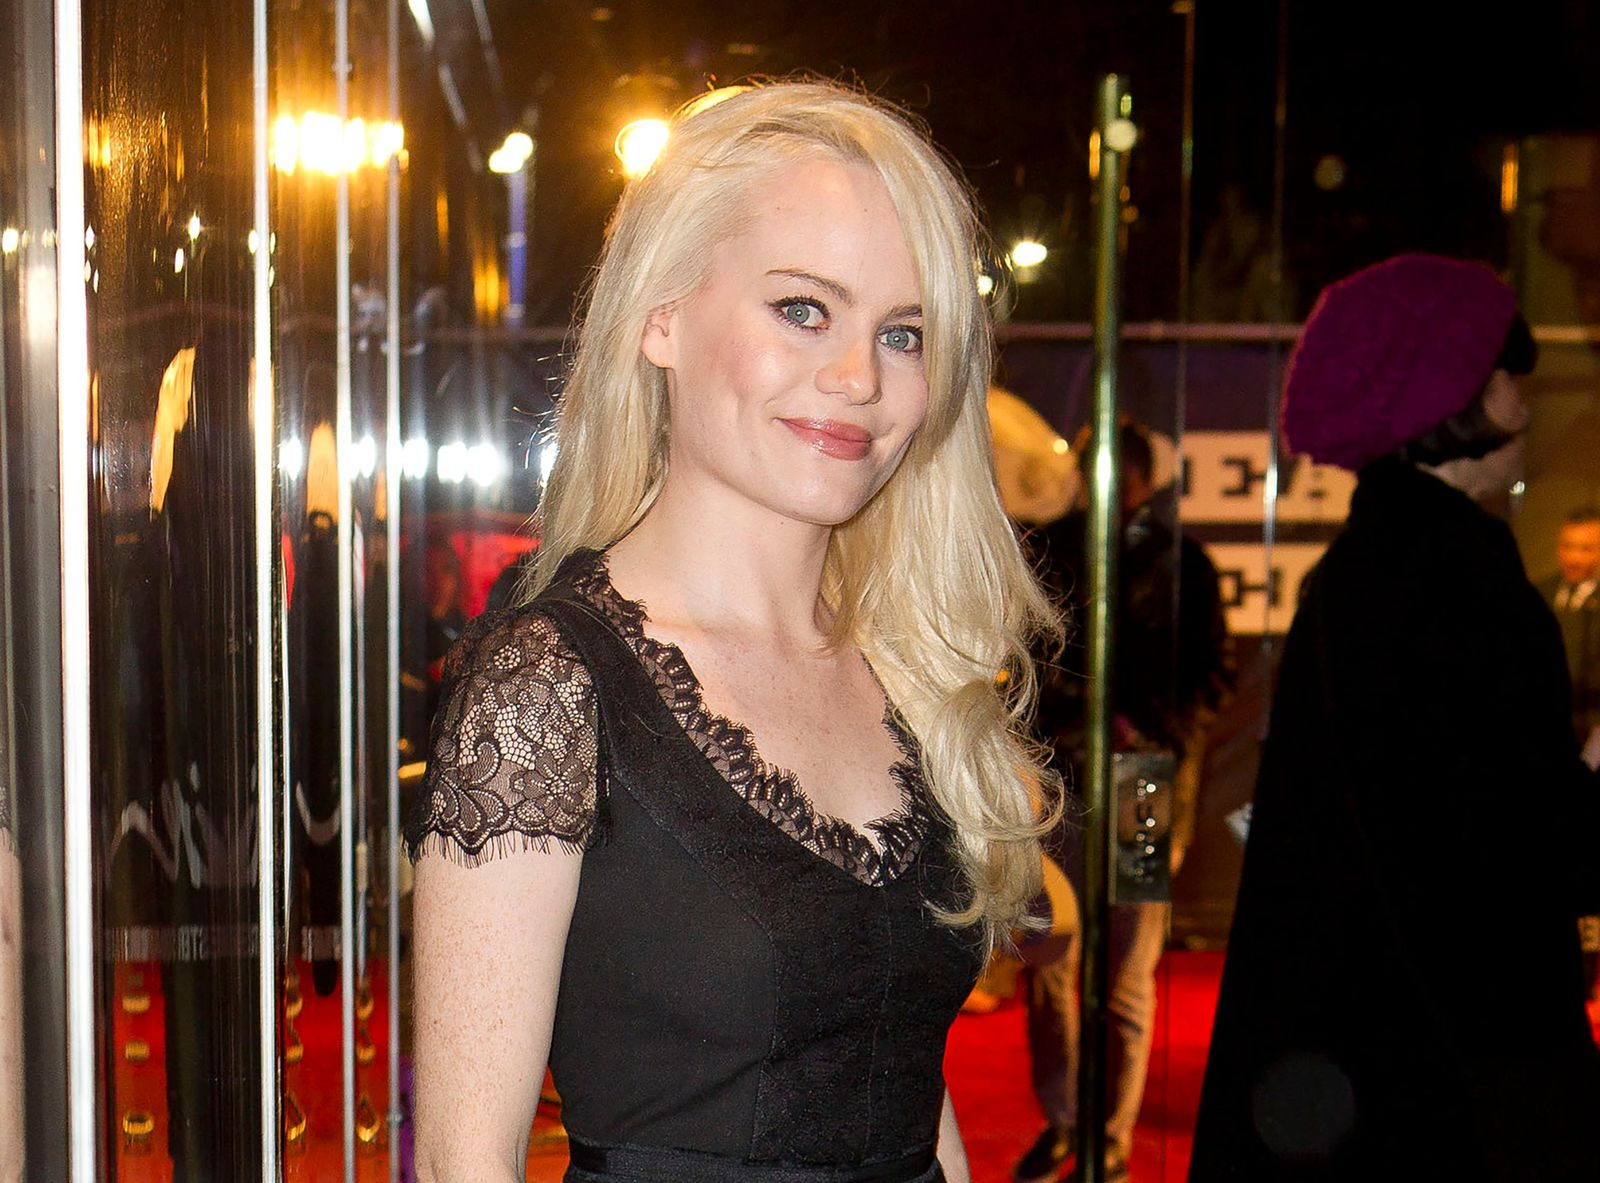 "FILE - This Dec. 8, 2011 file photo shows Welsh singer Duffy at the European premiere of ""Sherlock Holmes: A Game of Shadows"" in London. Duffy says she's been out of the public limelight for years to focus on recovering from what she described as being ""drugged and raped and held captive over some days."" She said in a revealing Instagram post Tuesday that it has taken time to recovery and asked her fans to support her.  (AP Photo/Joel Ryan, File)"